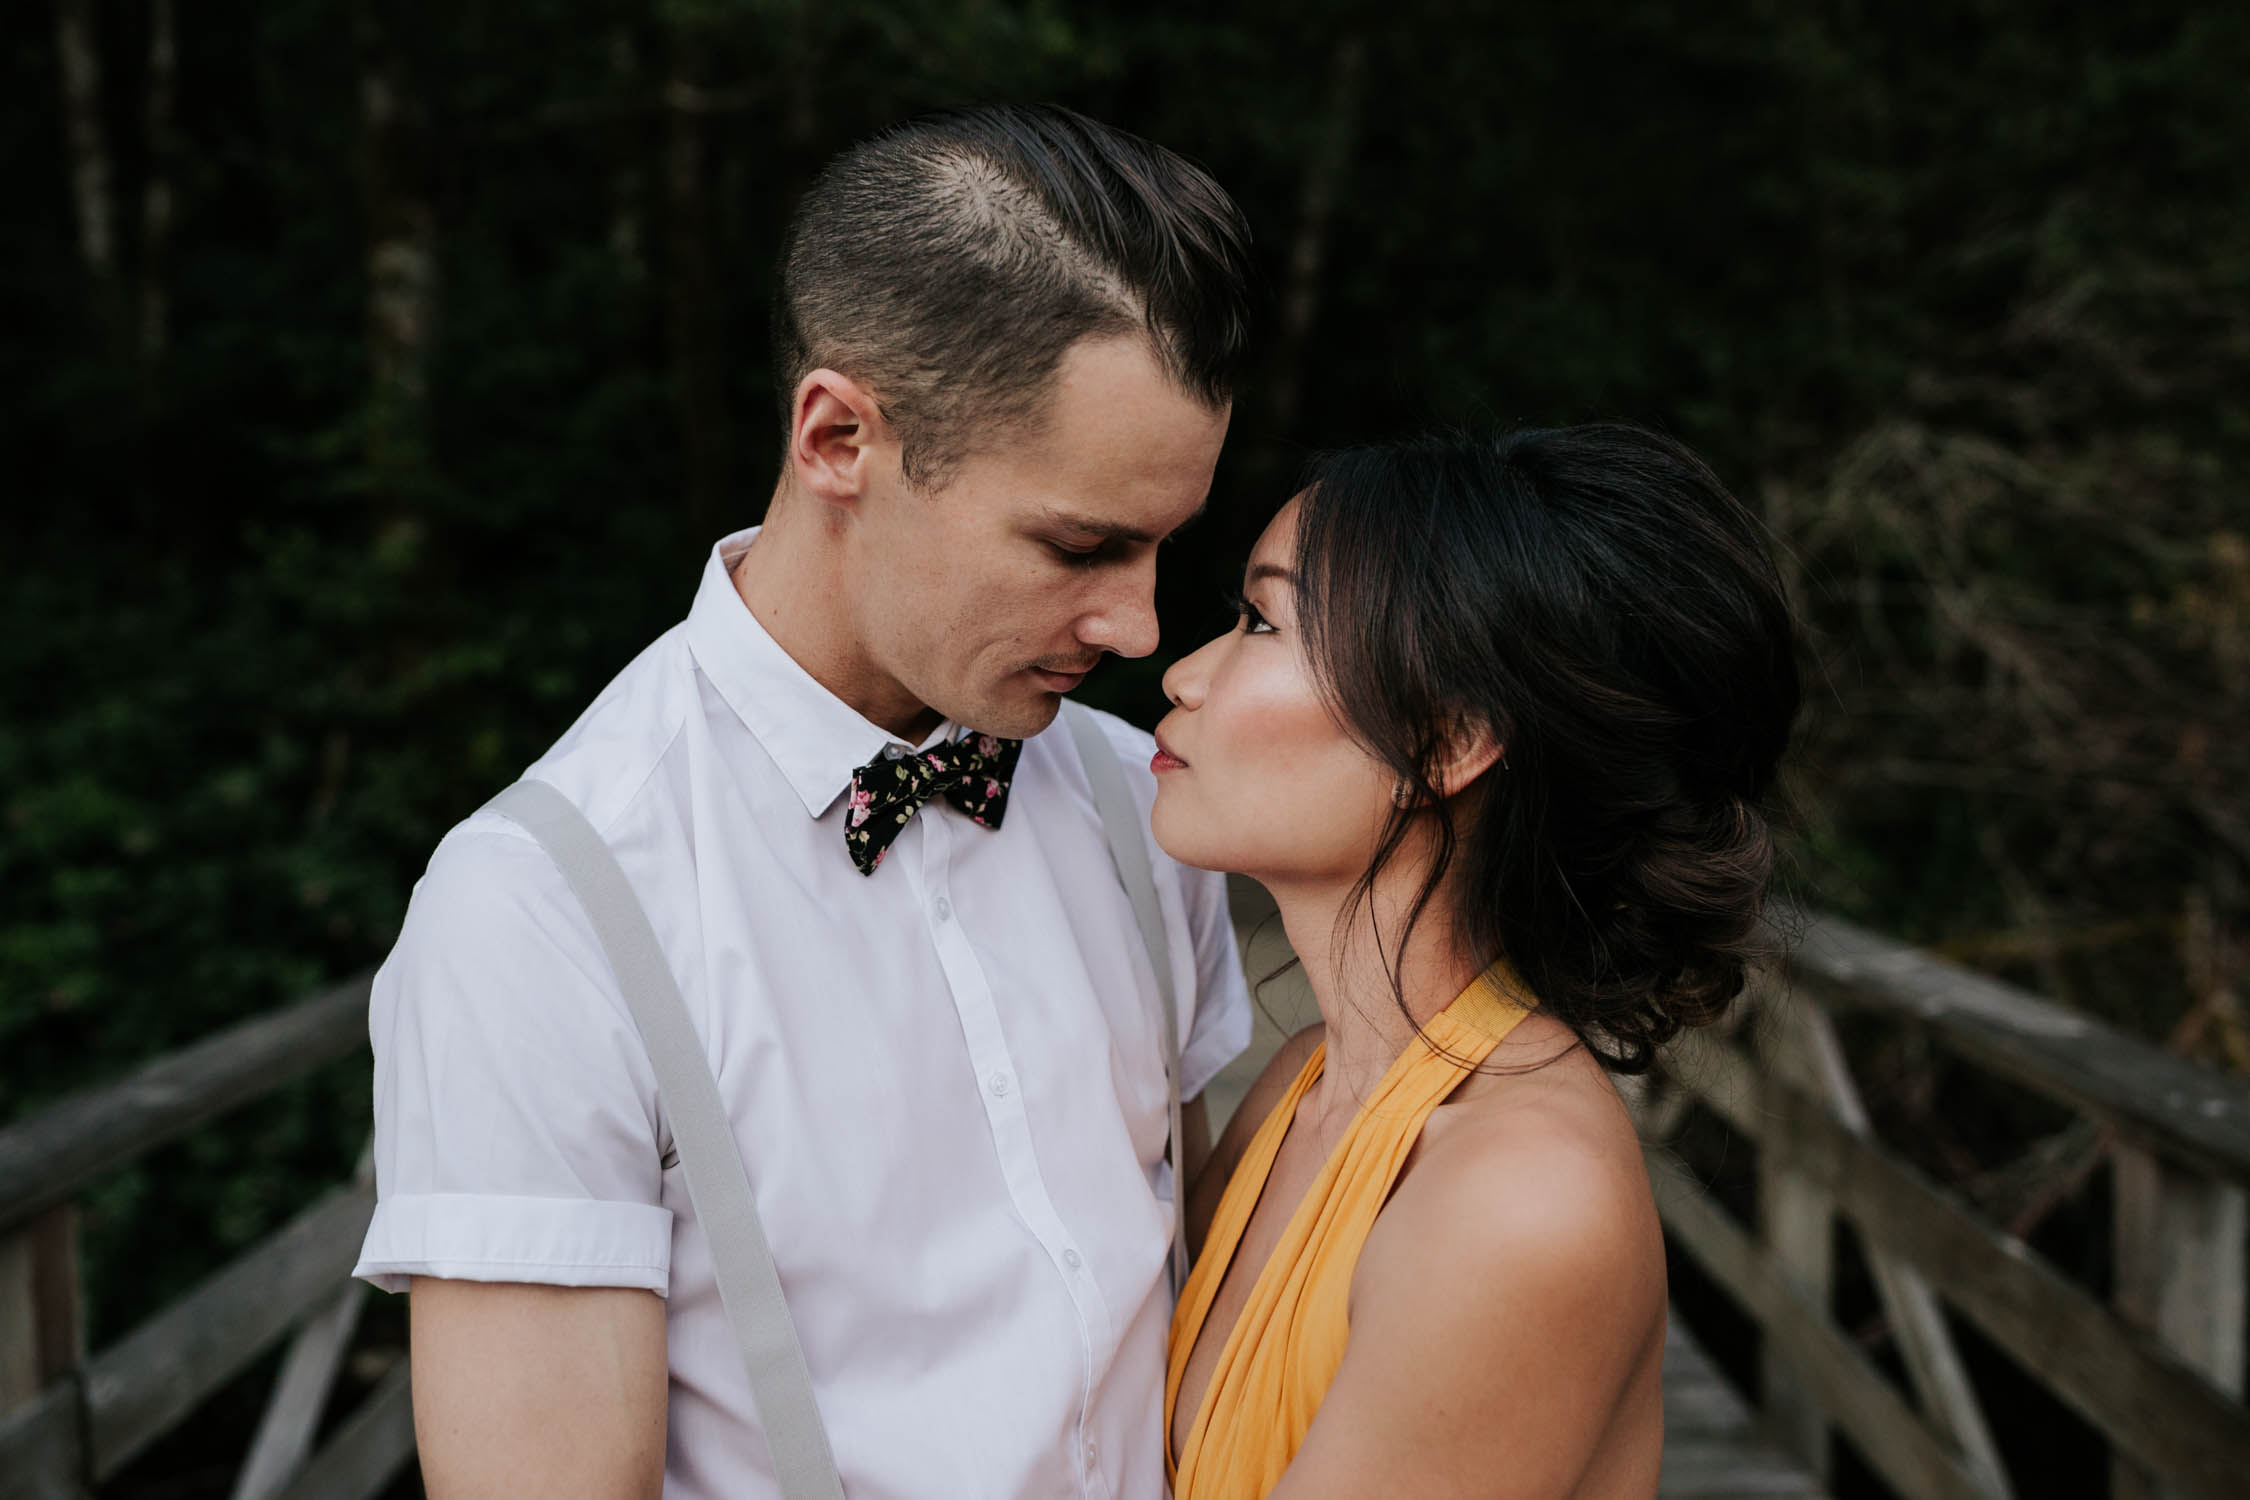 Engaged couple looking into each other's eyes. He is wearing a bowtie and she is wearing a yellow dress.